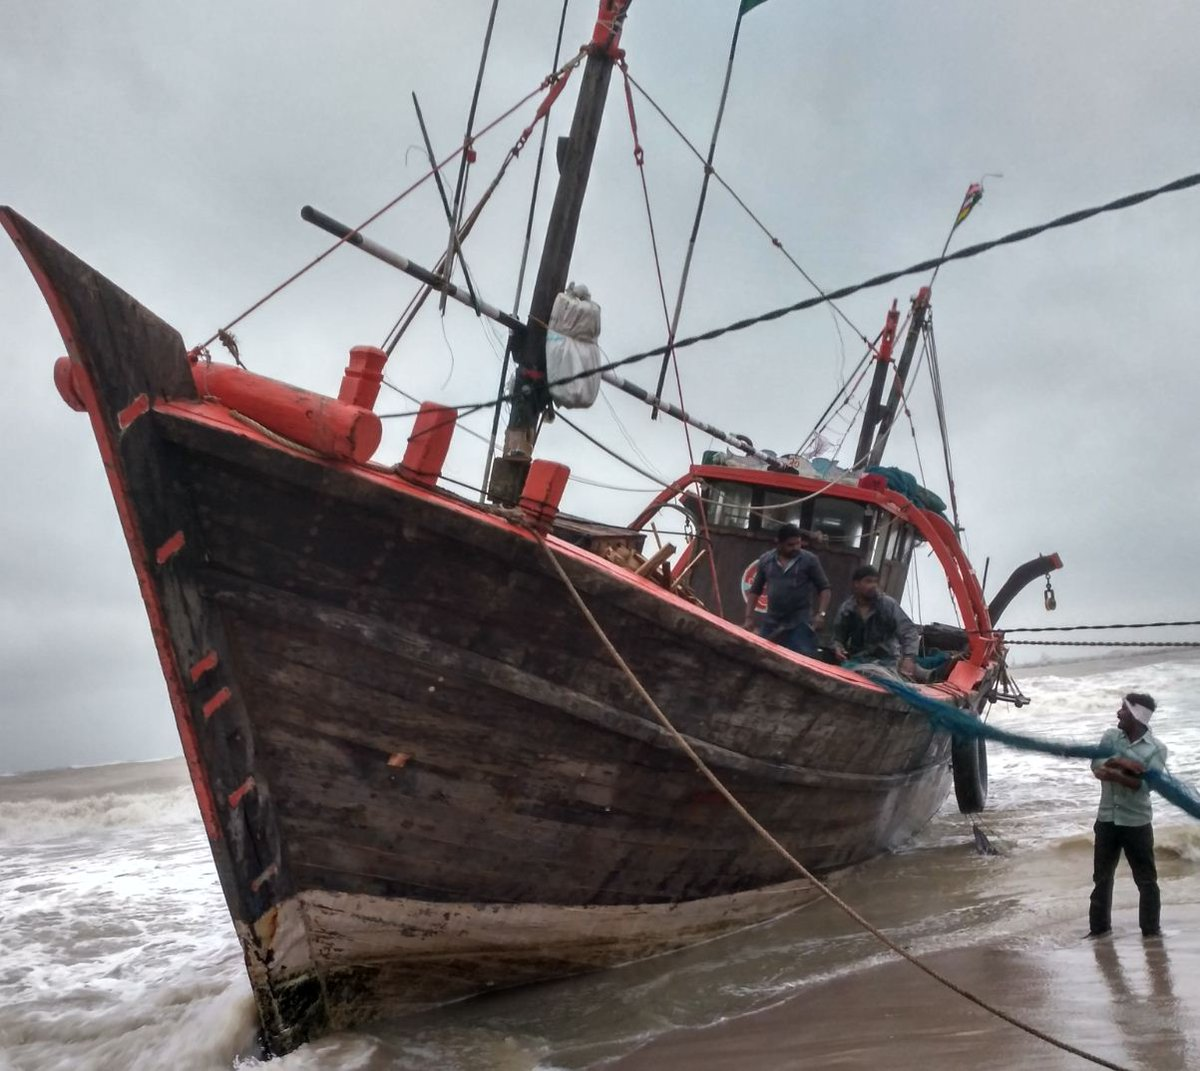 2 fishing boats capsize off Porbandar coast, 5 missing, Coast guard saves over 40 from five stranded boats, operation on